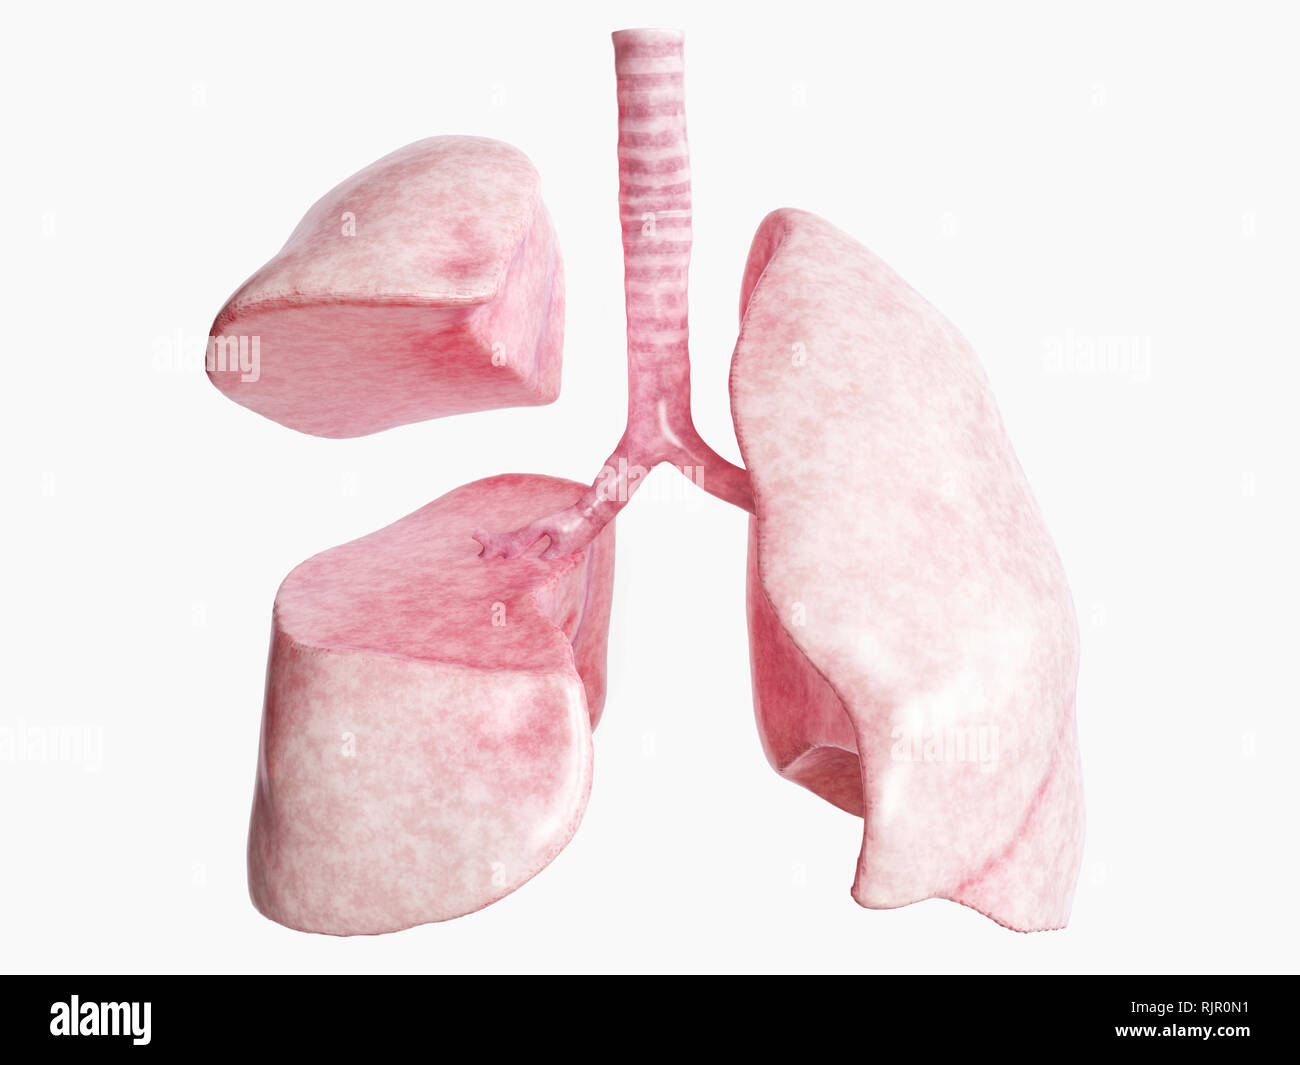 Lobectomy after severe lung disease - 3 of 4 - 3D Rendering - Stock Image